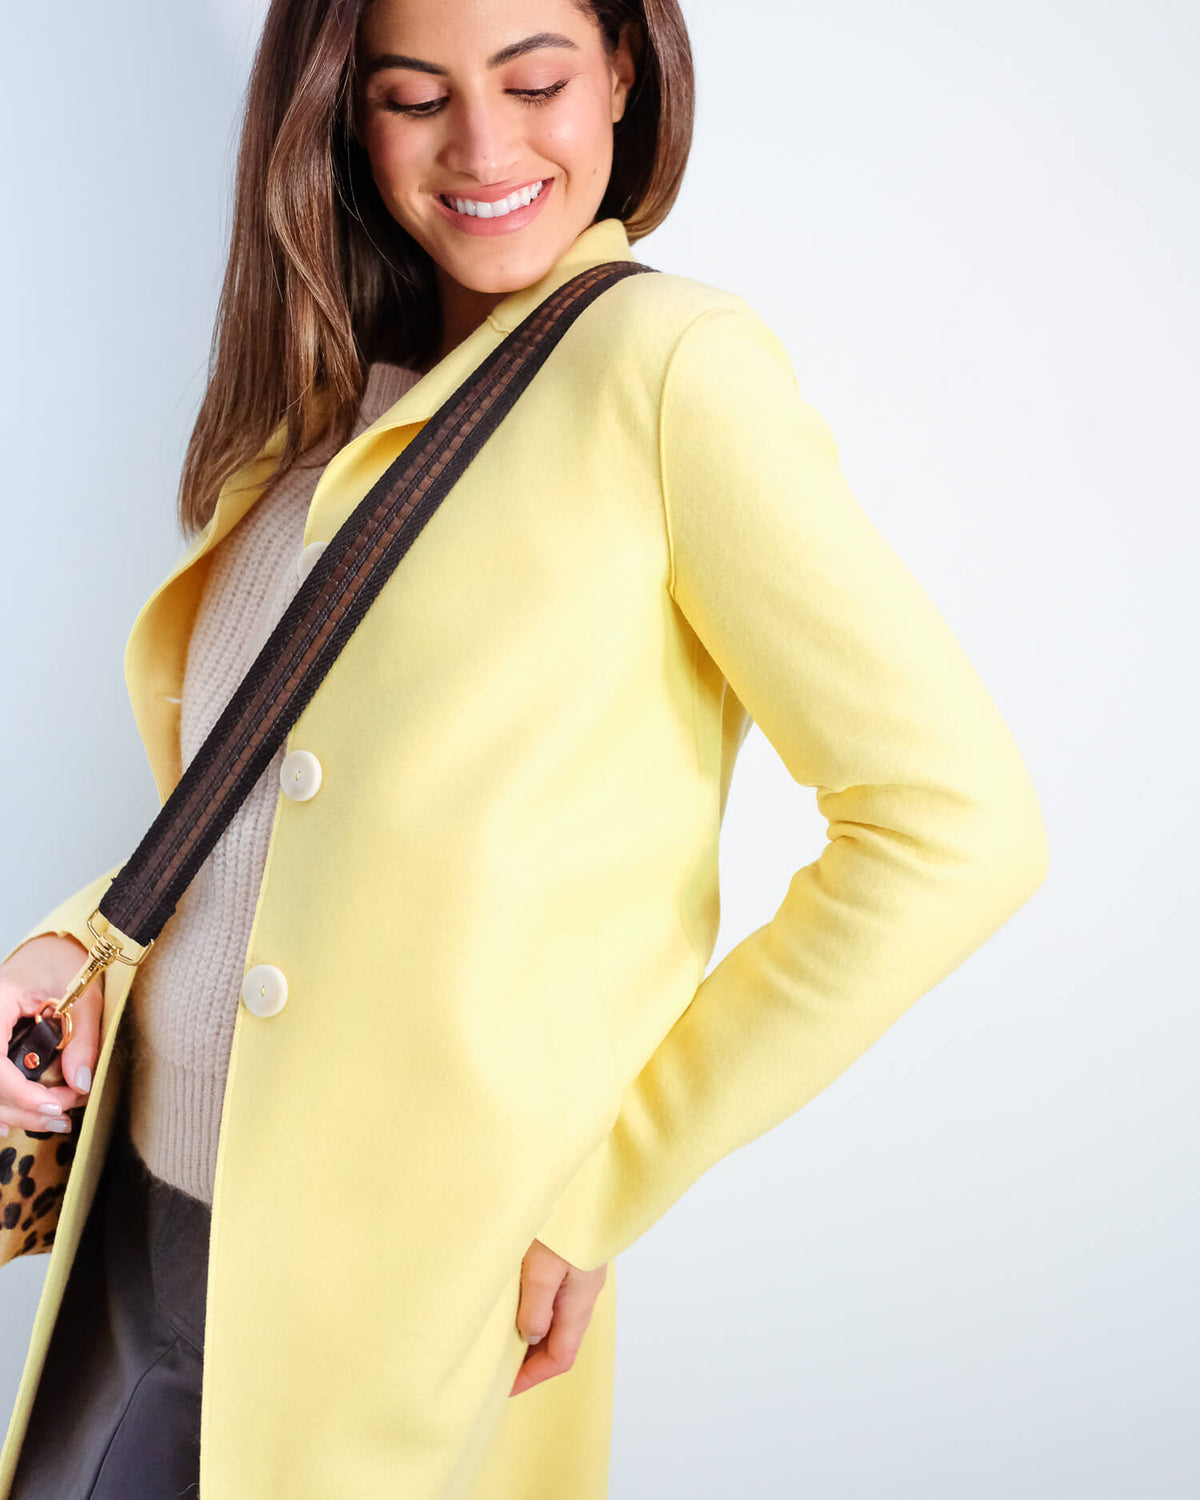 HWL Pressed wool boxy coat in pastel yellow